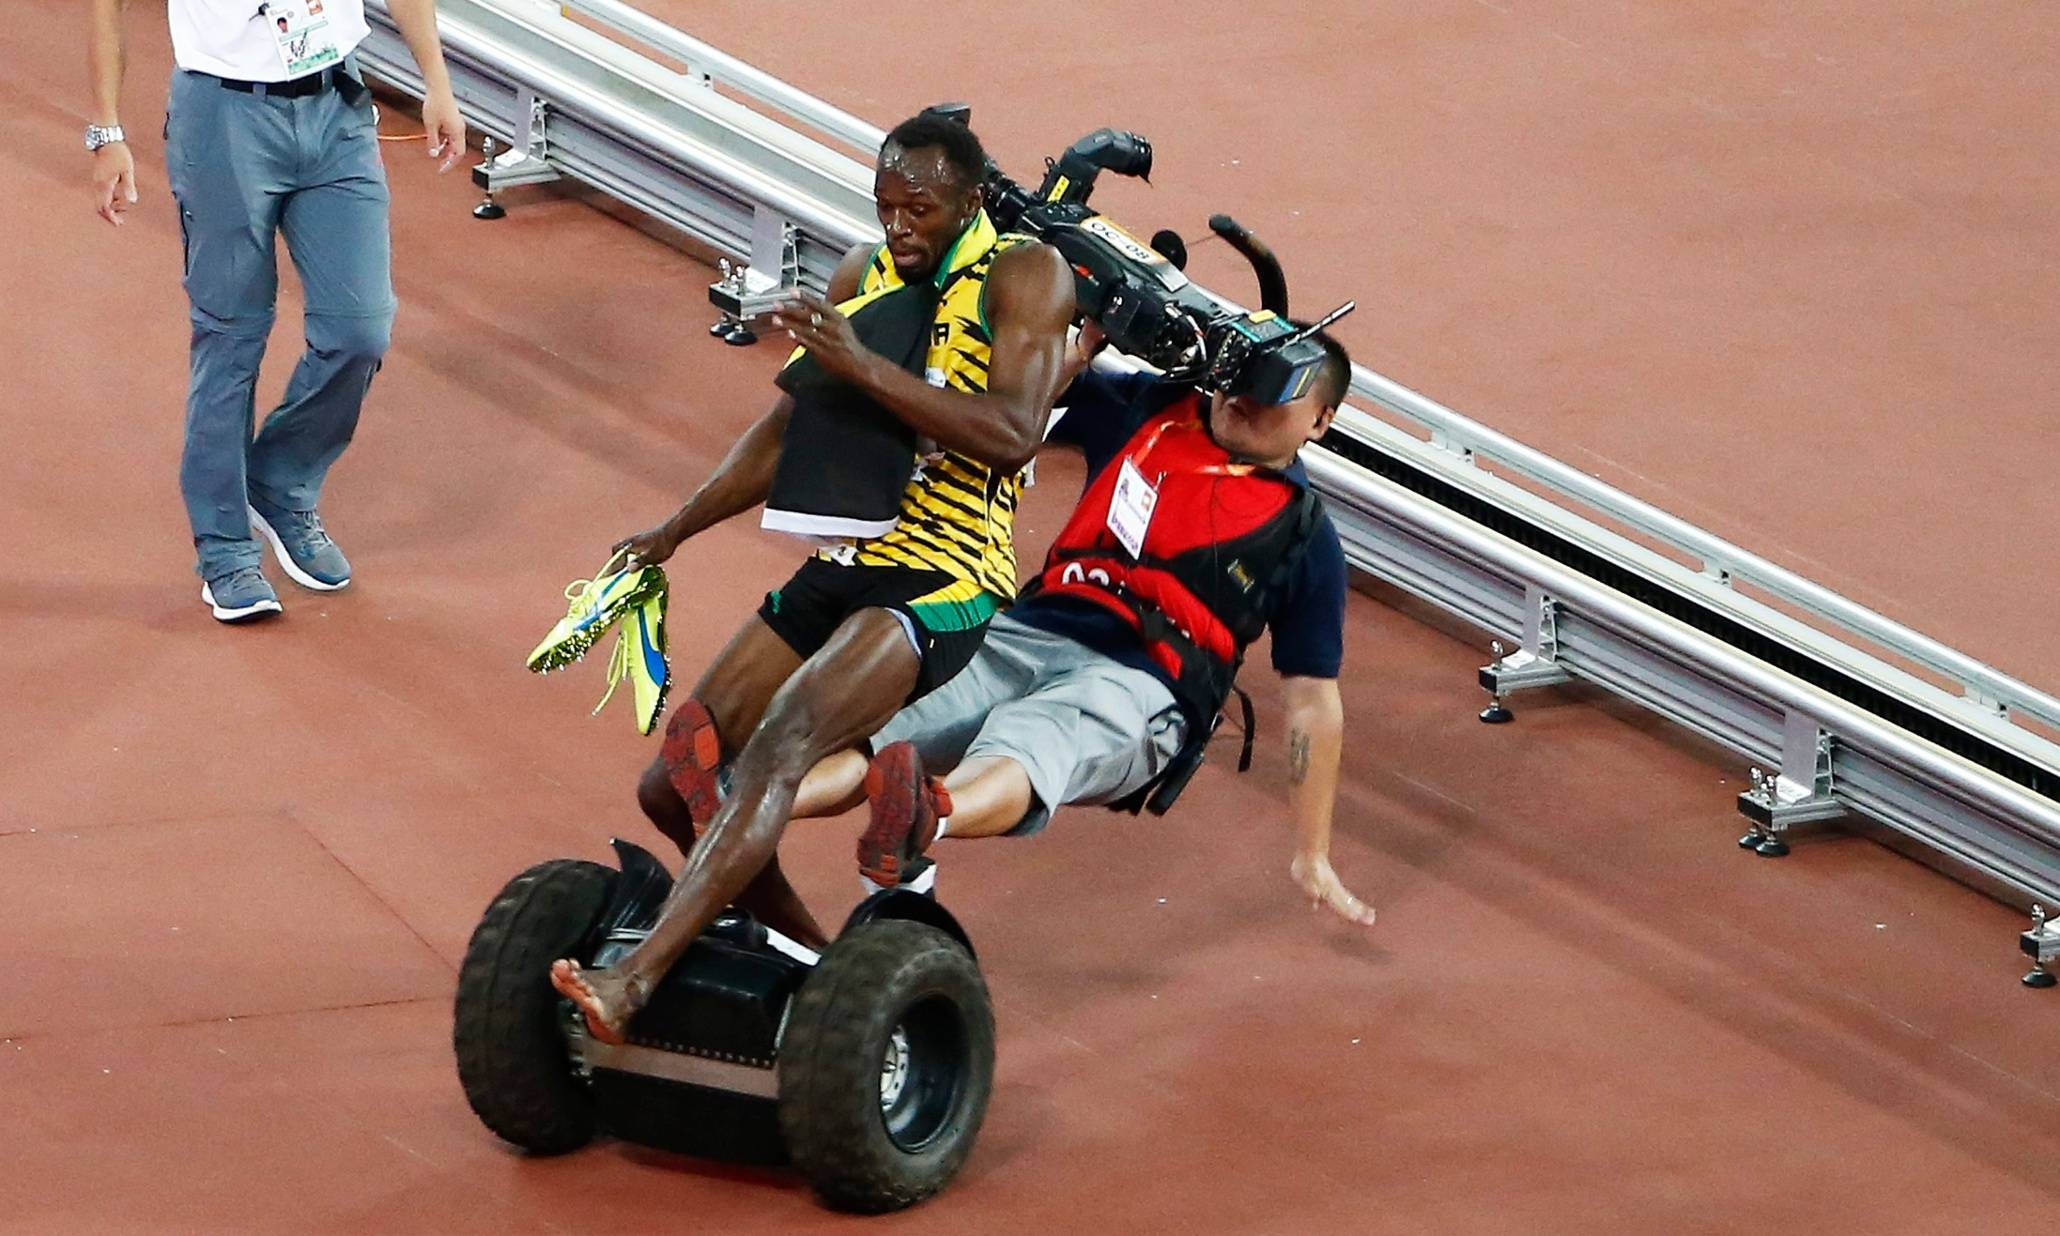 epa04900474 A Tv cameraman drives into Usain Bolt of Jamaica after the men's 200m final during the Beijing 2015 IAAF World Championships at the National Stadium, also known as Bird's Nest, in Beijing, China, 27 August 2015. Bolt won the race. EPA/ROLEX DELA PENA